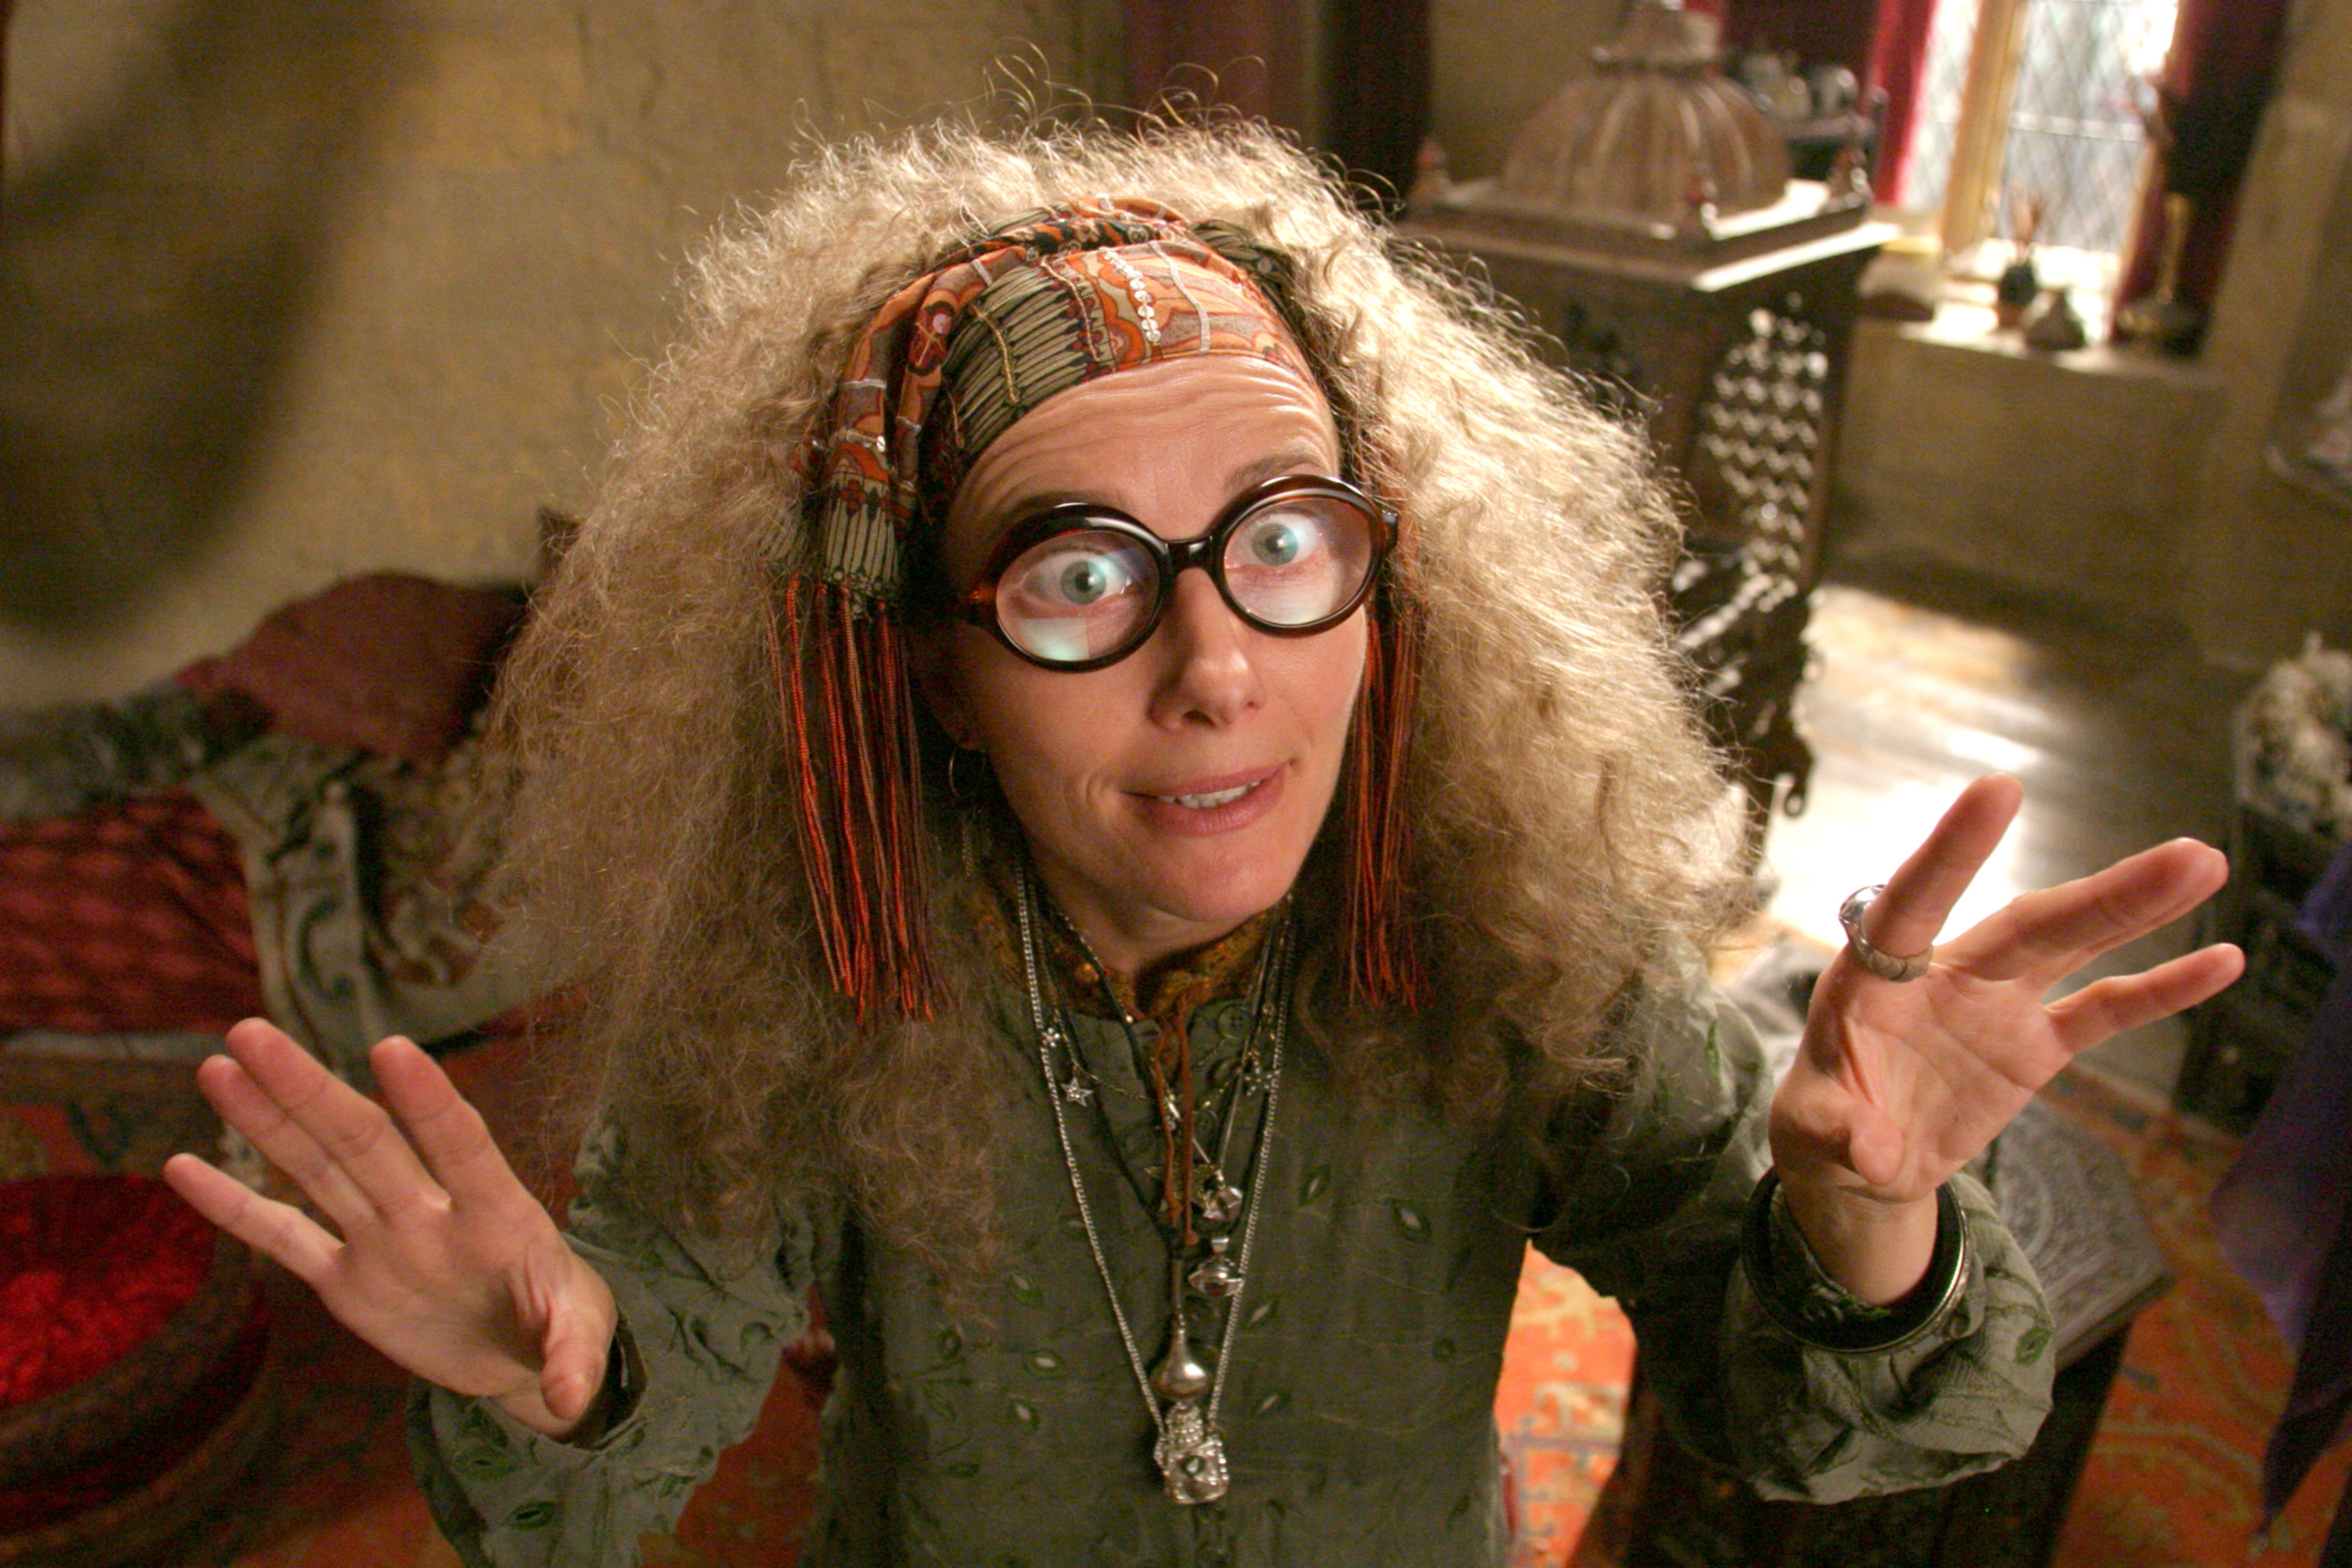 Sybill Trelawney looking mystically mad from the Prisoner of Azkaban